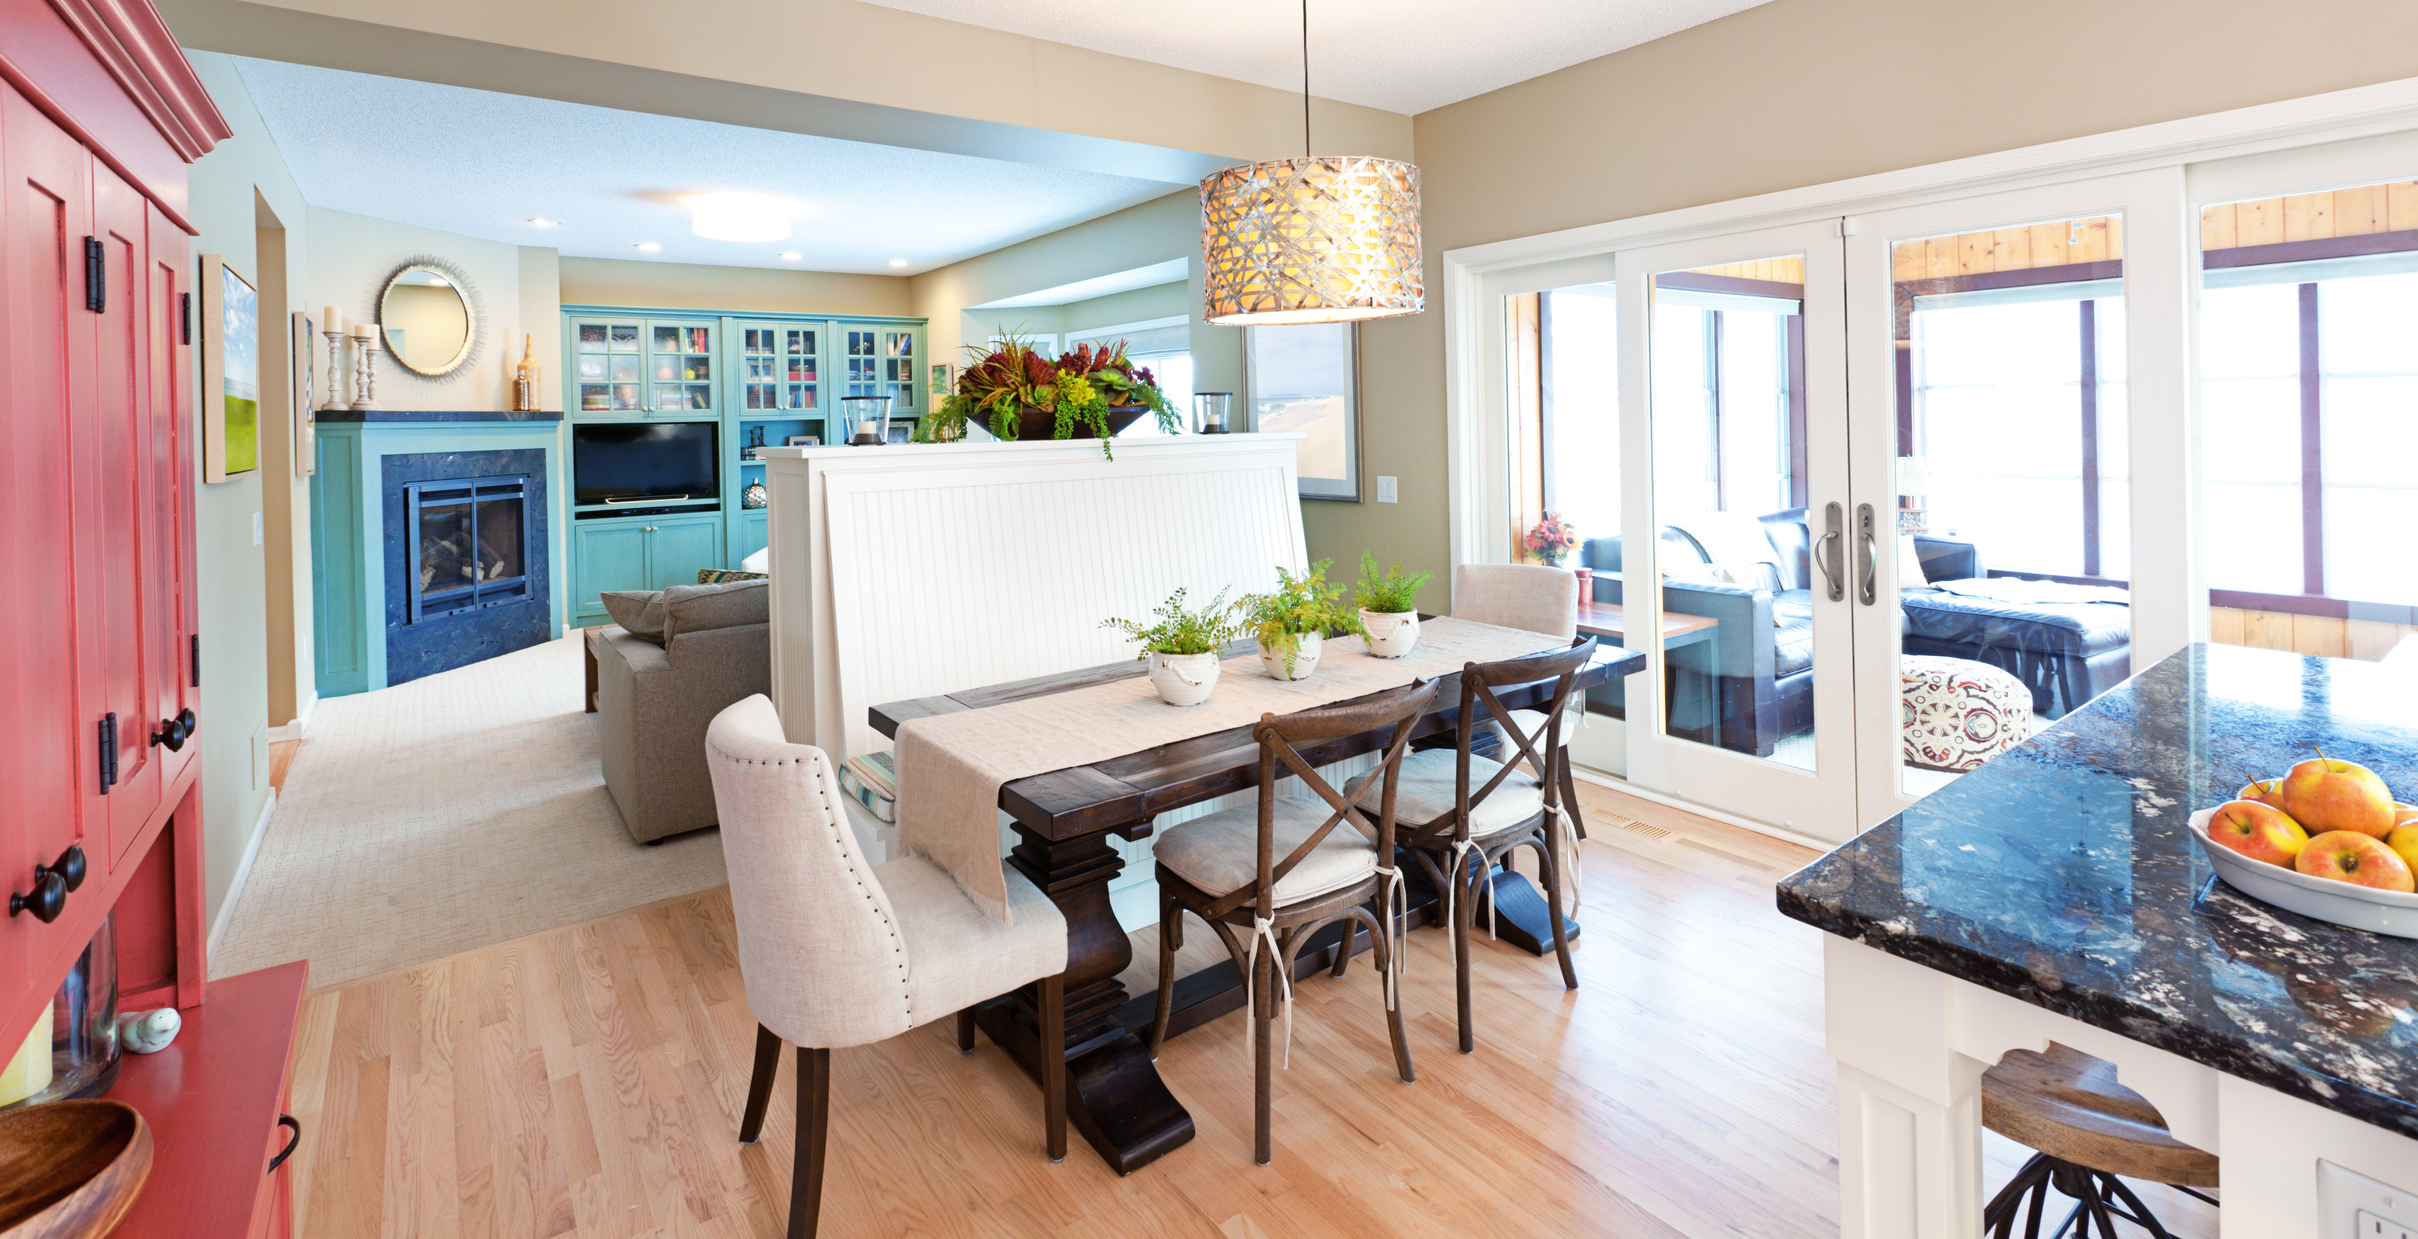 Your Home - Organize Today will work with you to make your rooms functional and stress free.